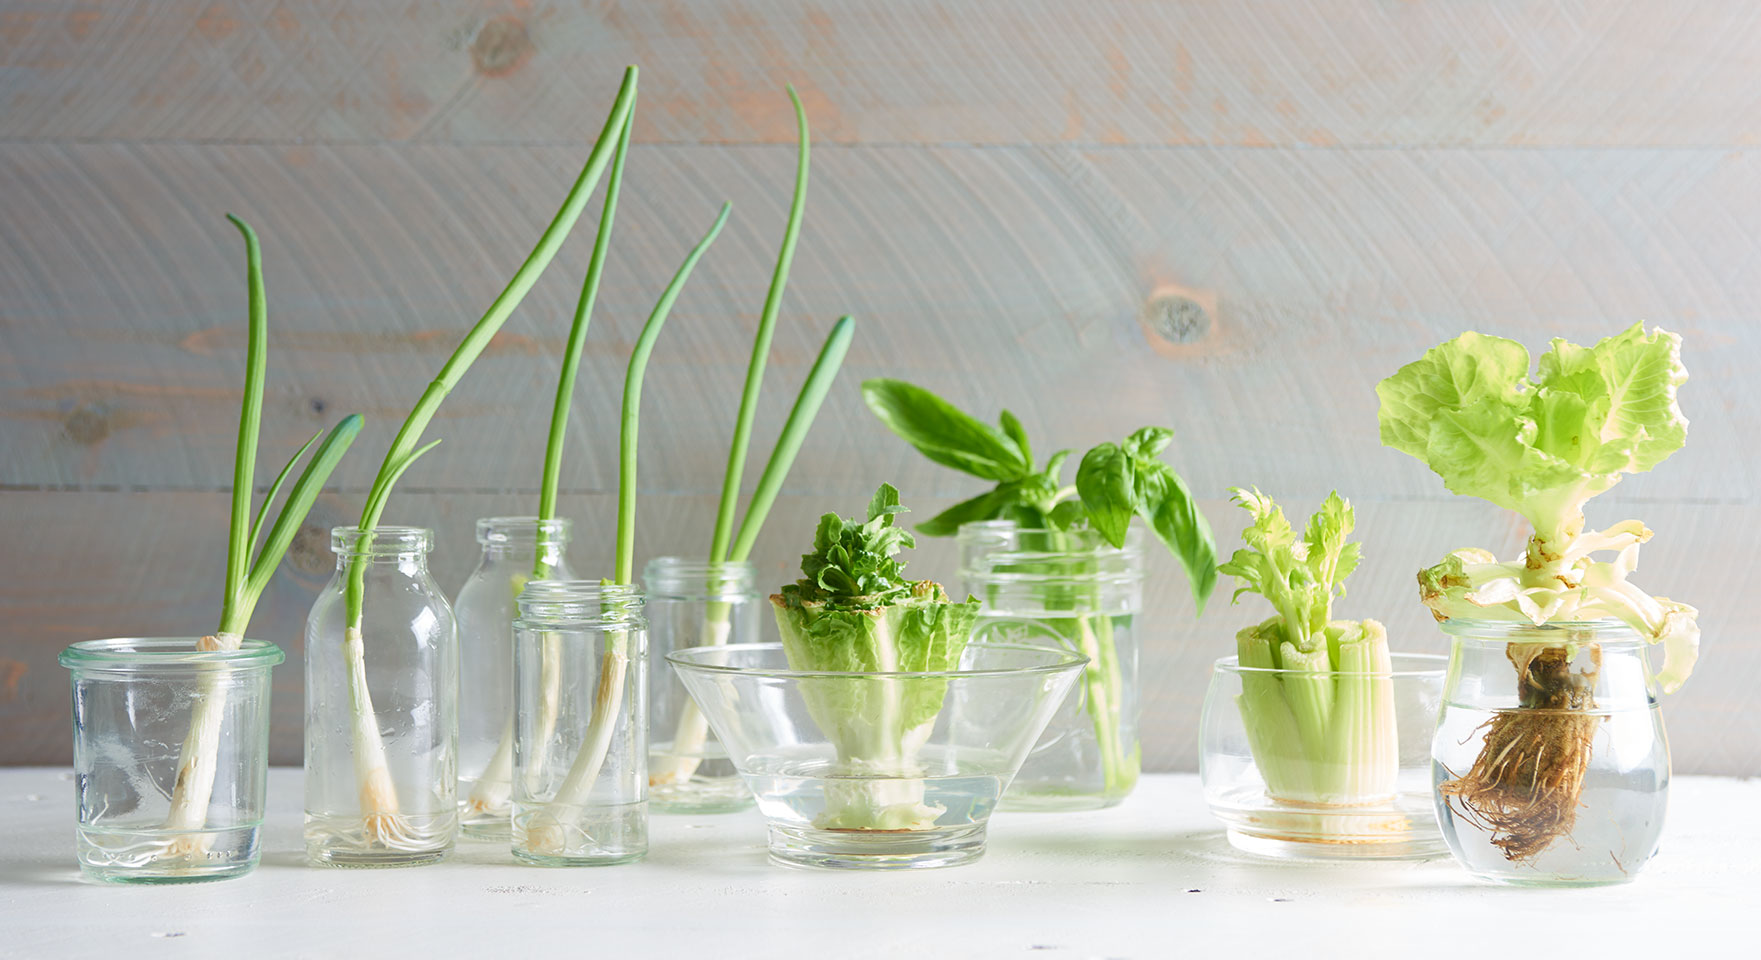 growing plants from veggie scraps